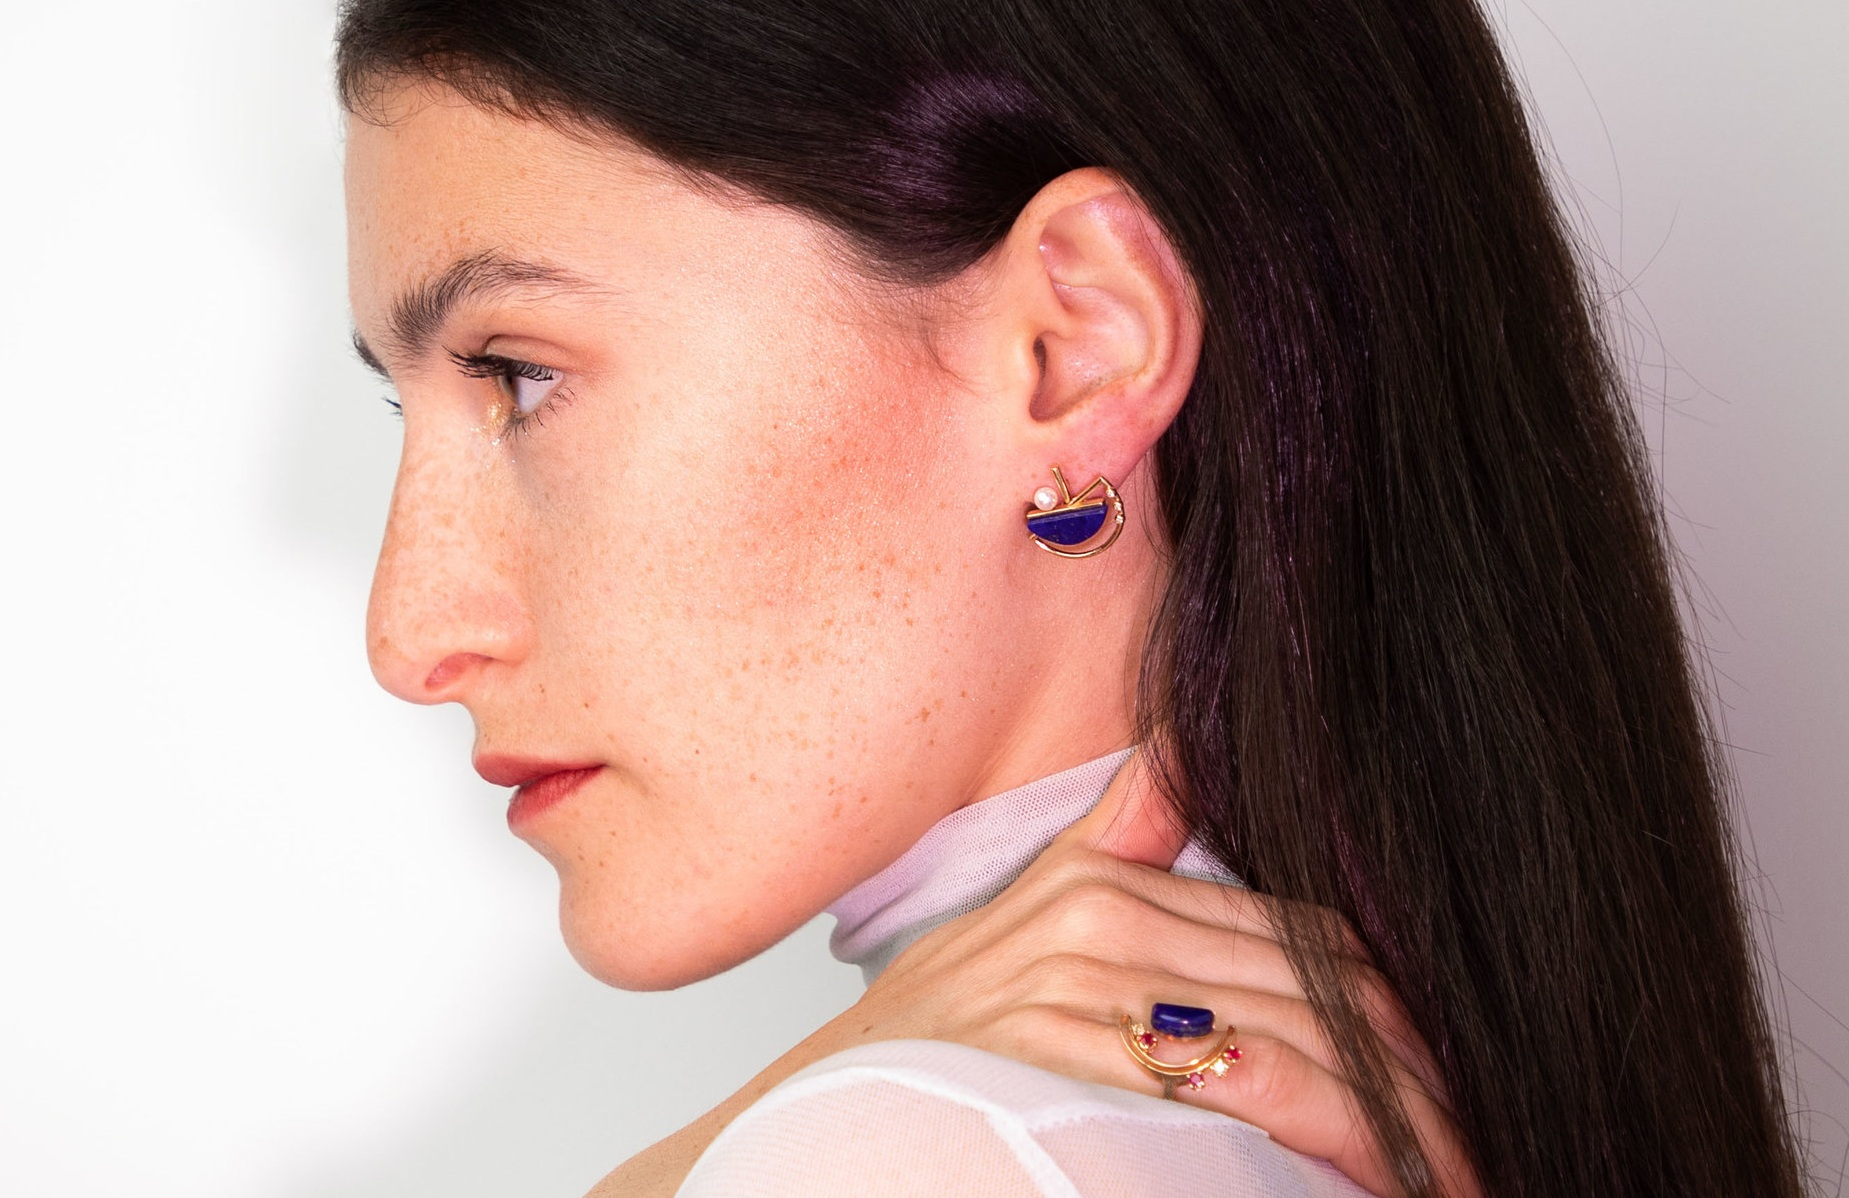 artemis  short earring a modular earring that can be worn in three lengths